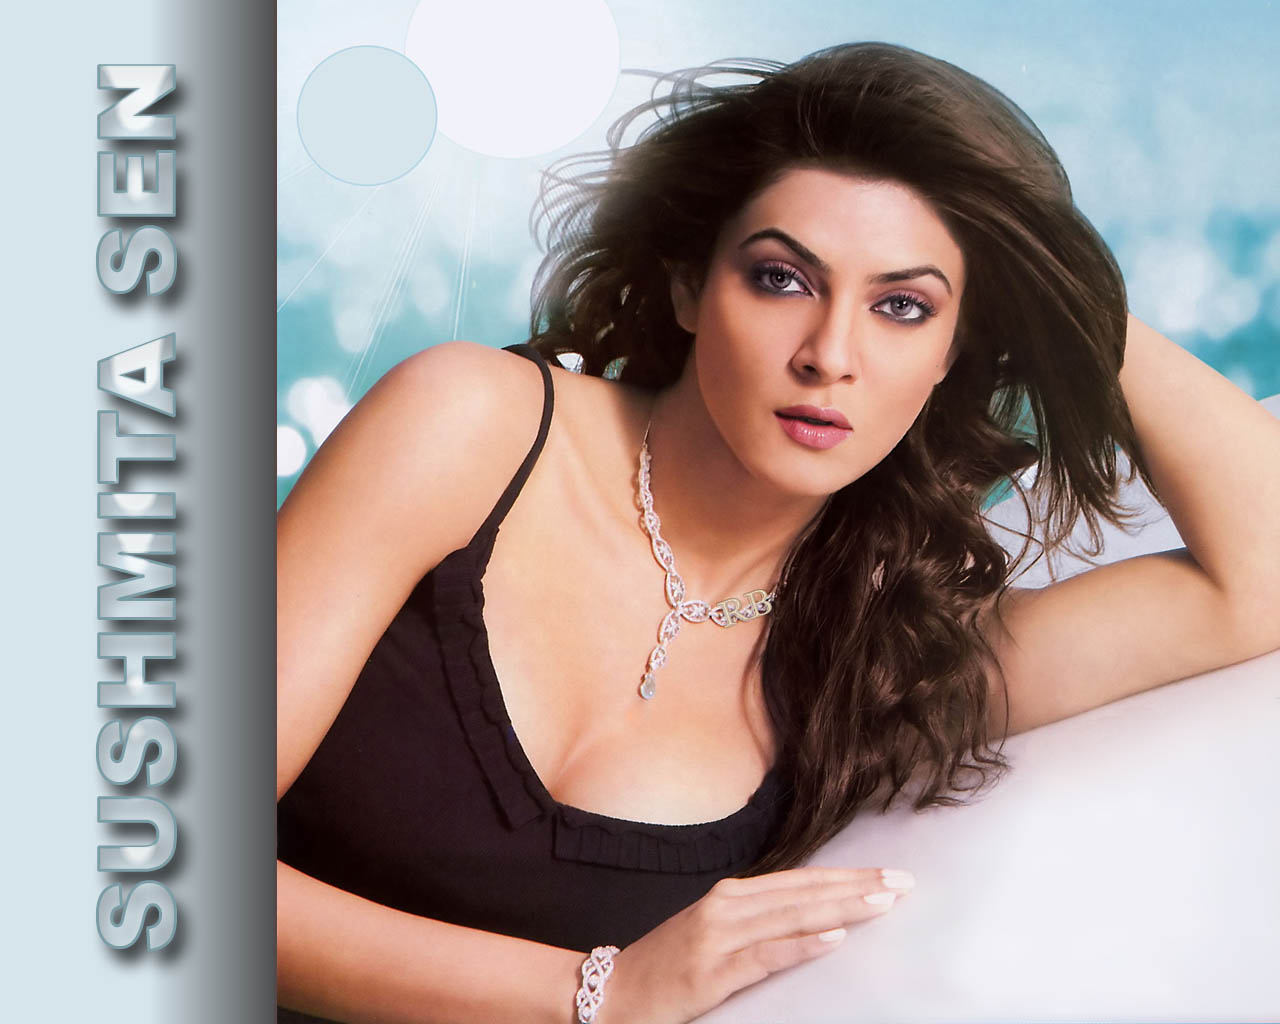 Bollywood actress Sushmitha sen Wallpapers. For All Indian Hot sites Links